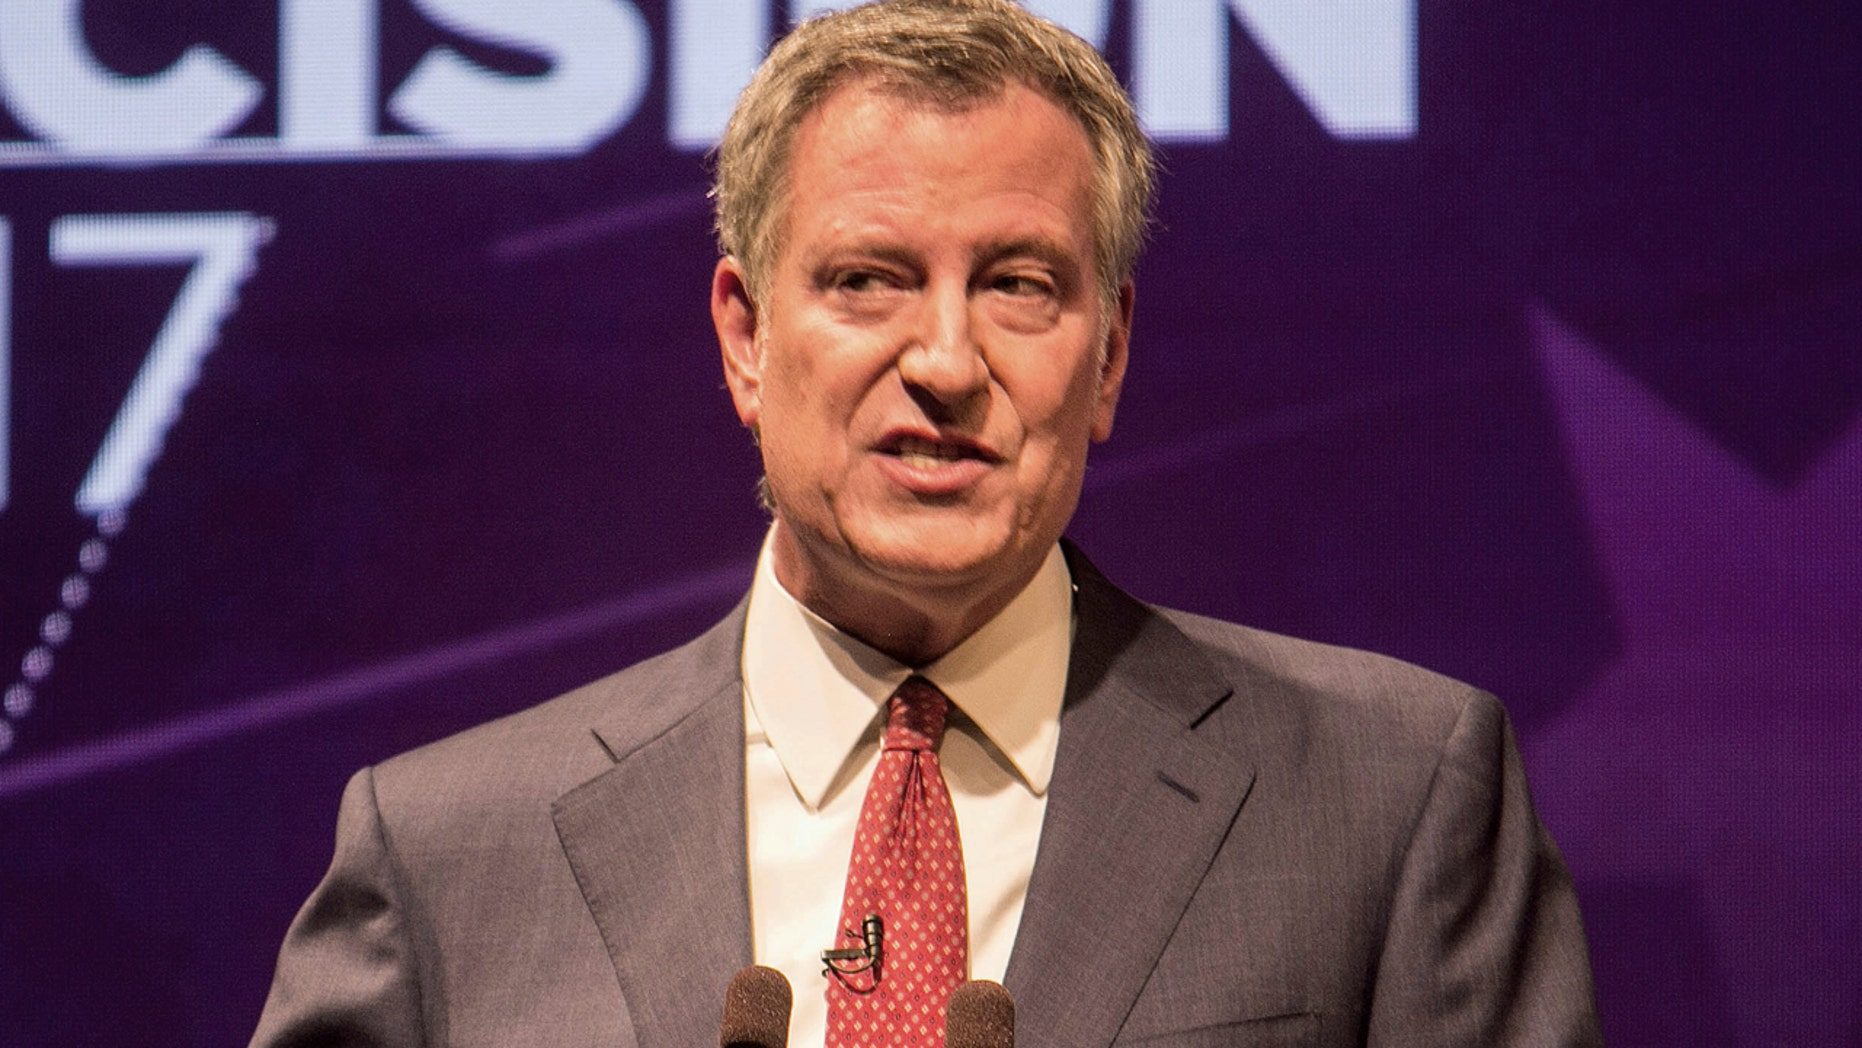 Aug. 23: New York City Mayor Bill de Blasio participates in the first debate for the Democratic mayoral primary in New York